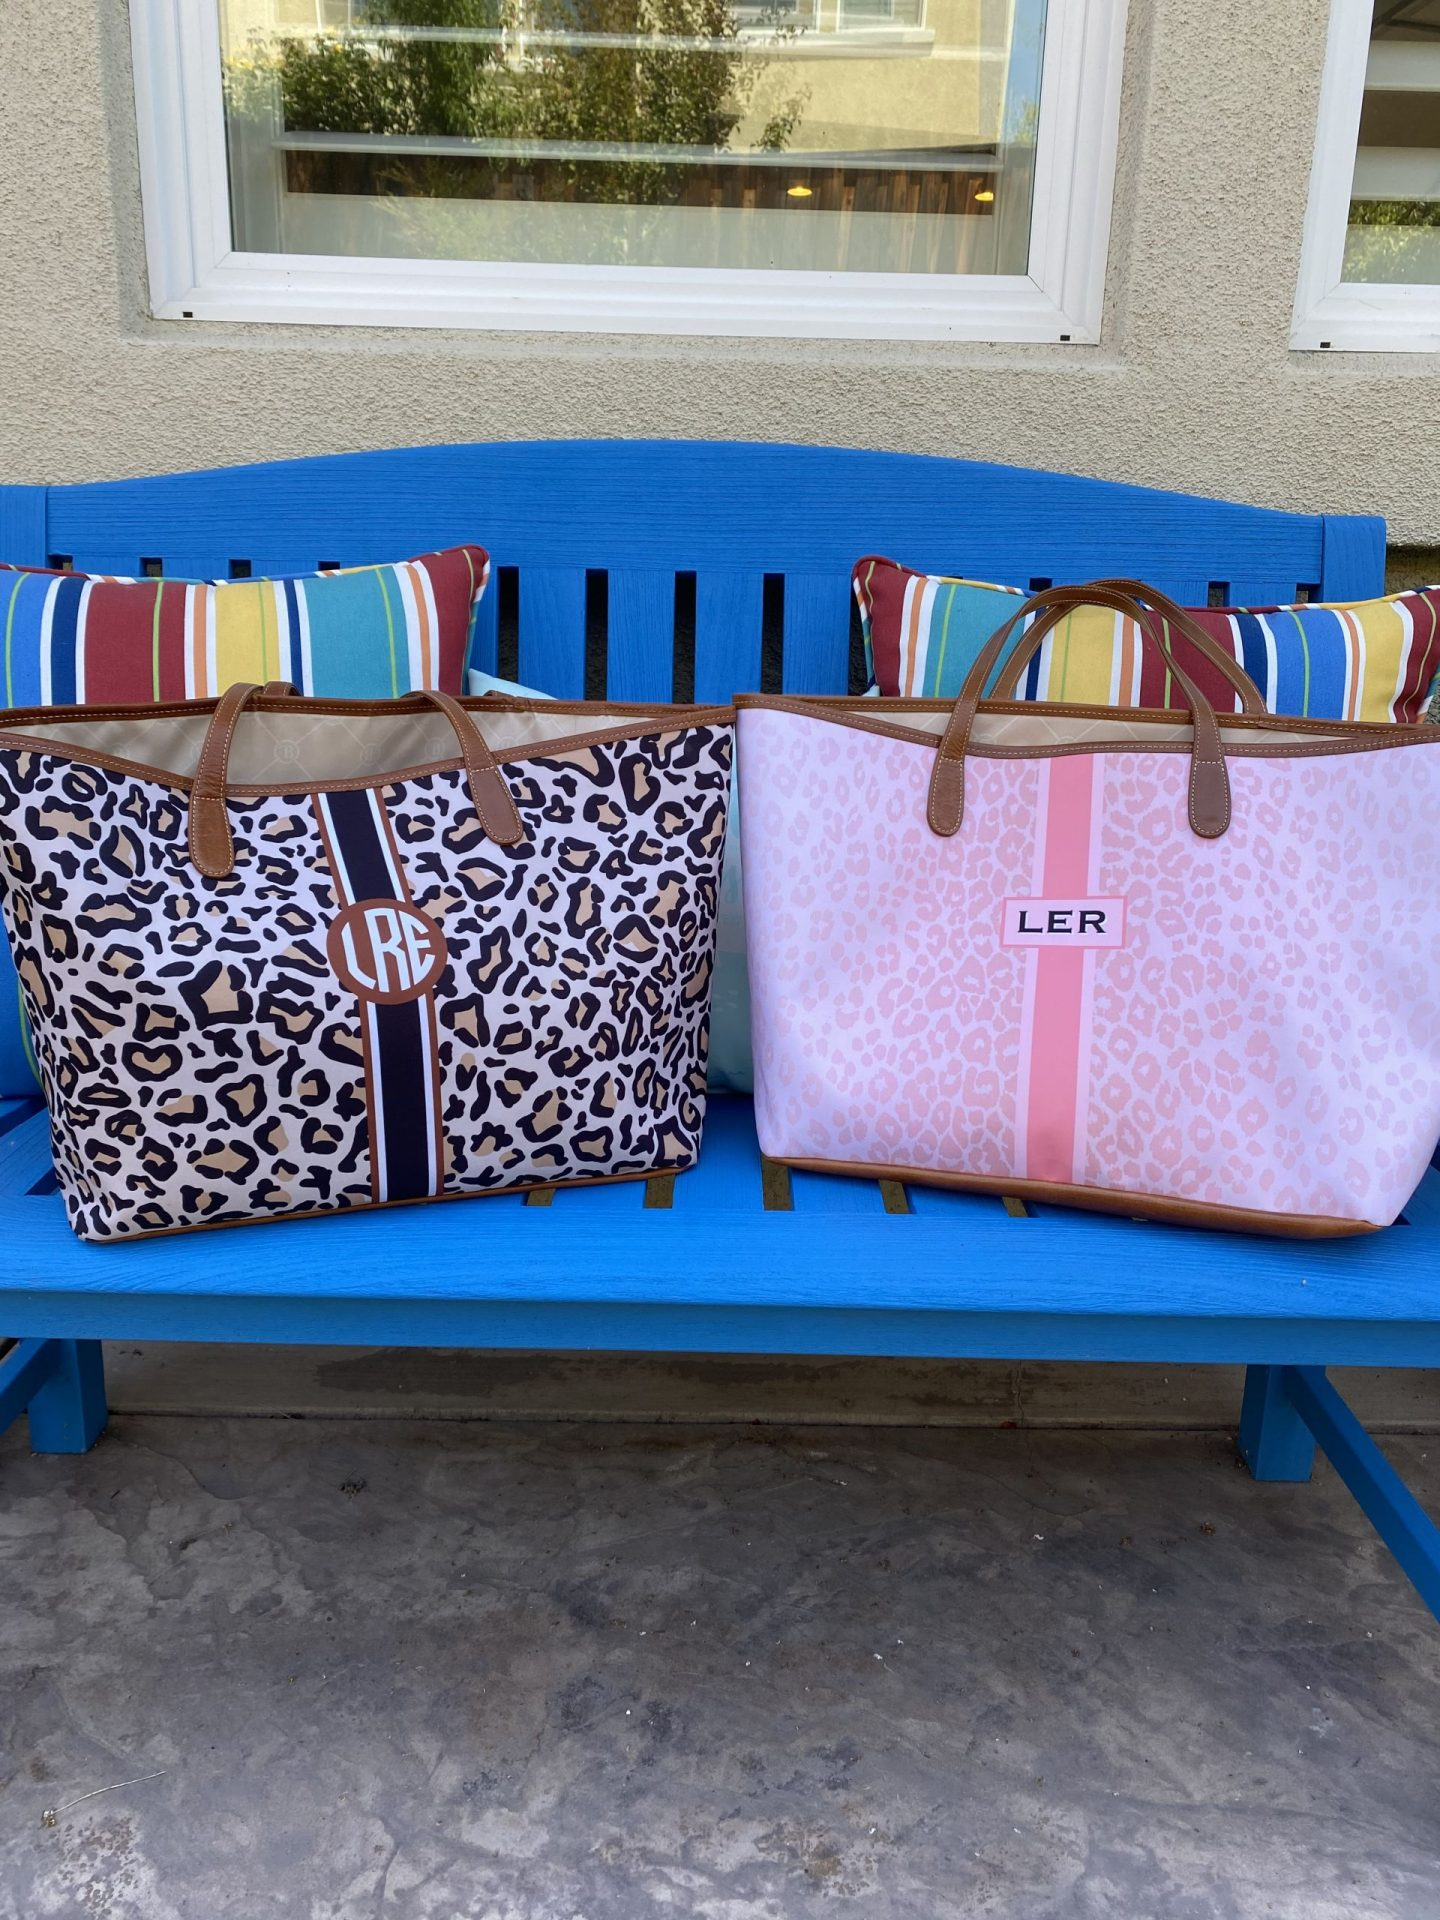 Barrington Totes, Friday Favorites